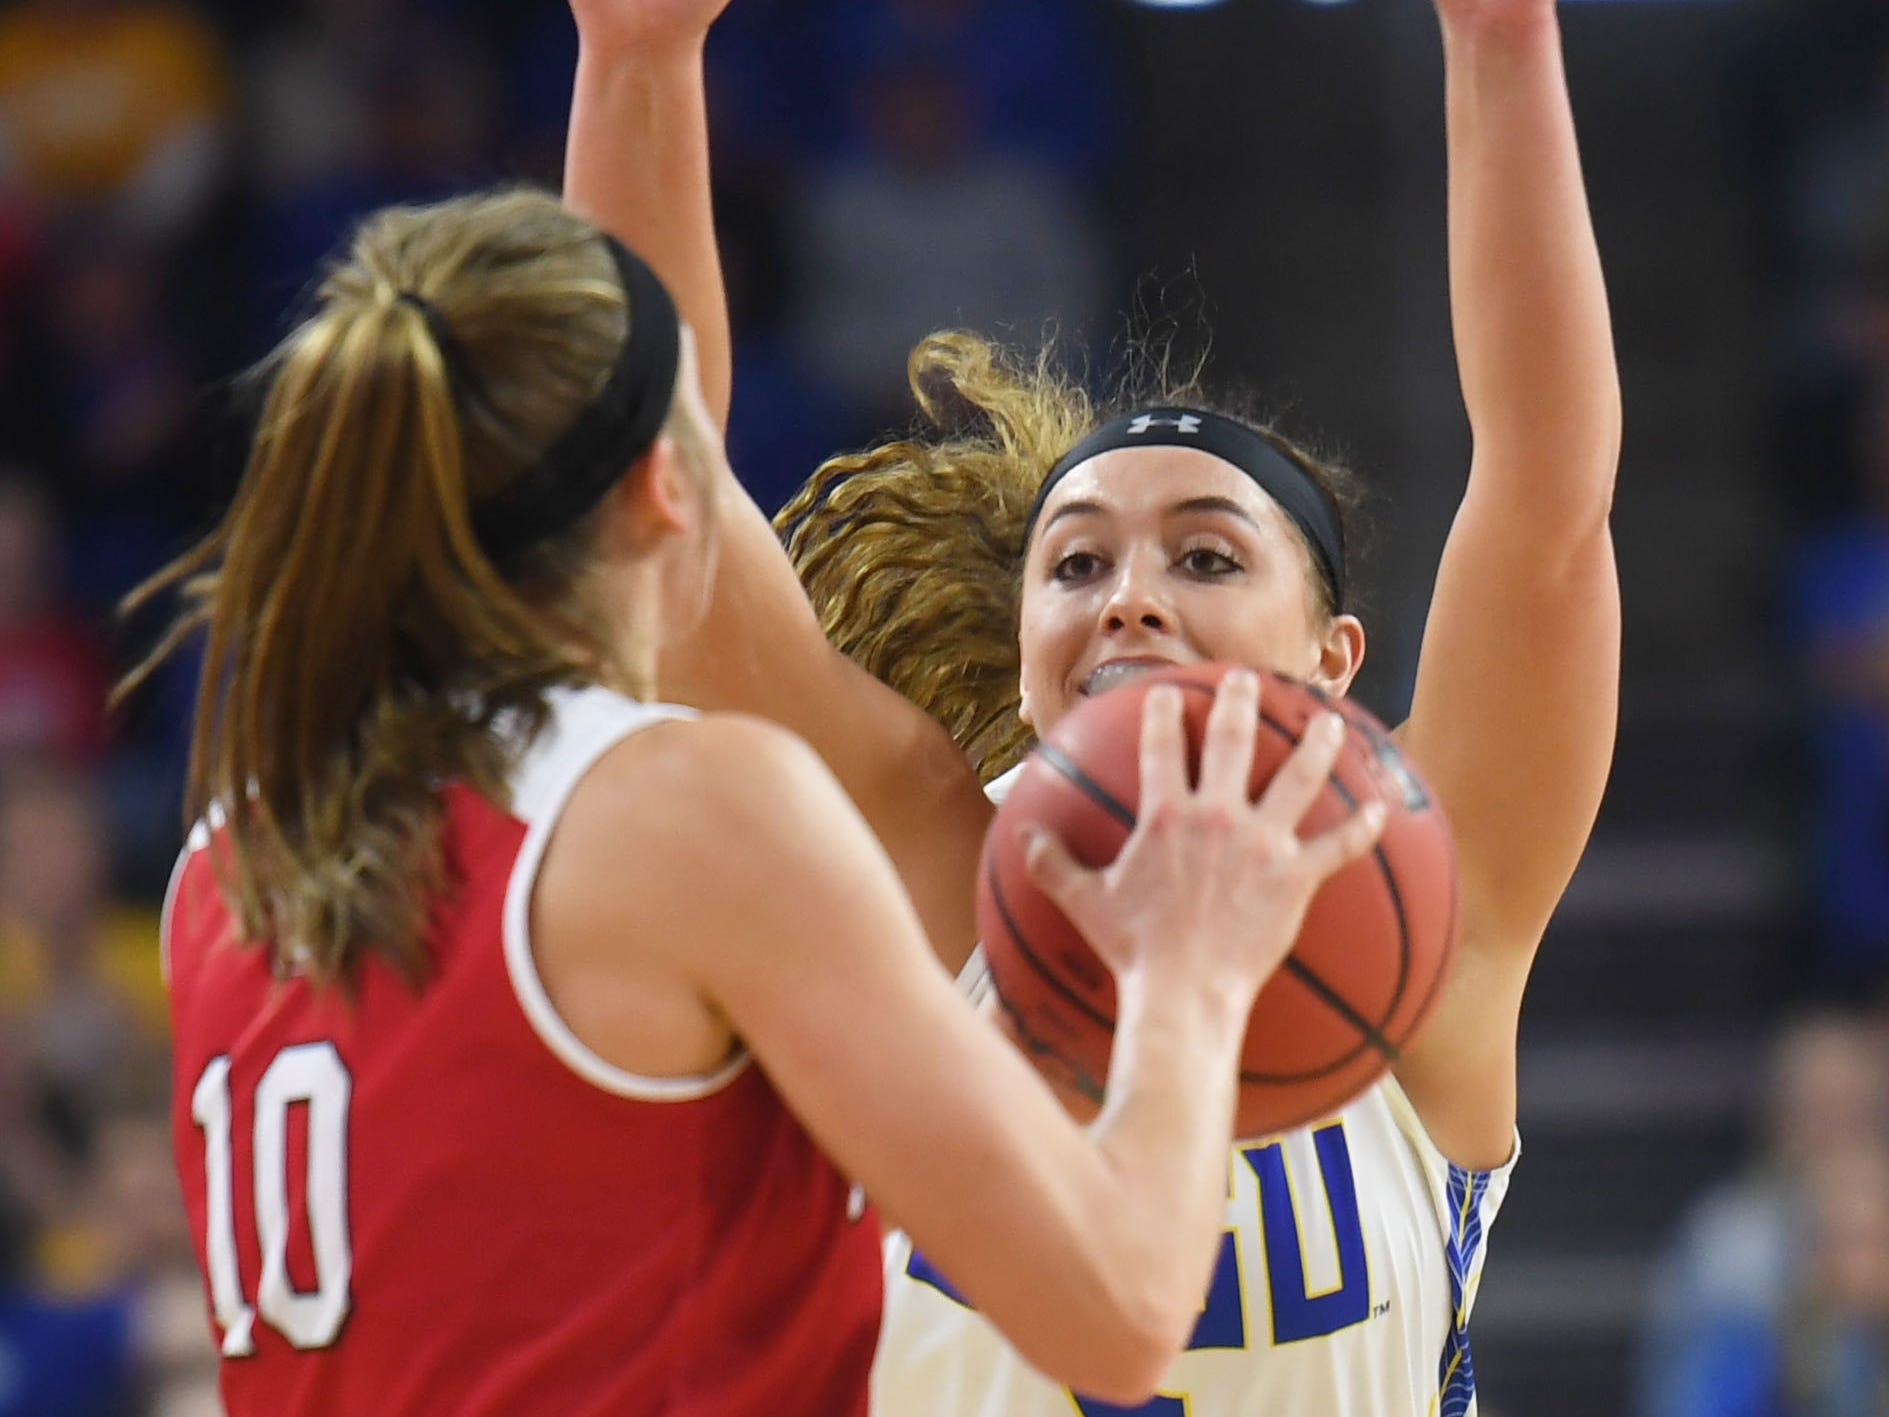 SDSU's Rylie Cascio Jensen goes against USD's Allison Arens during the game Tuesday, March 12, in the Summit League women's championship at the Denny Sanford Premier Center in Sioux Falls.